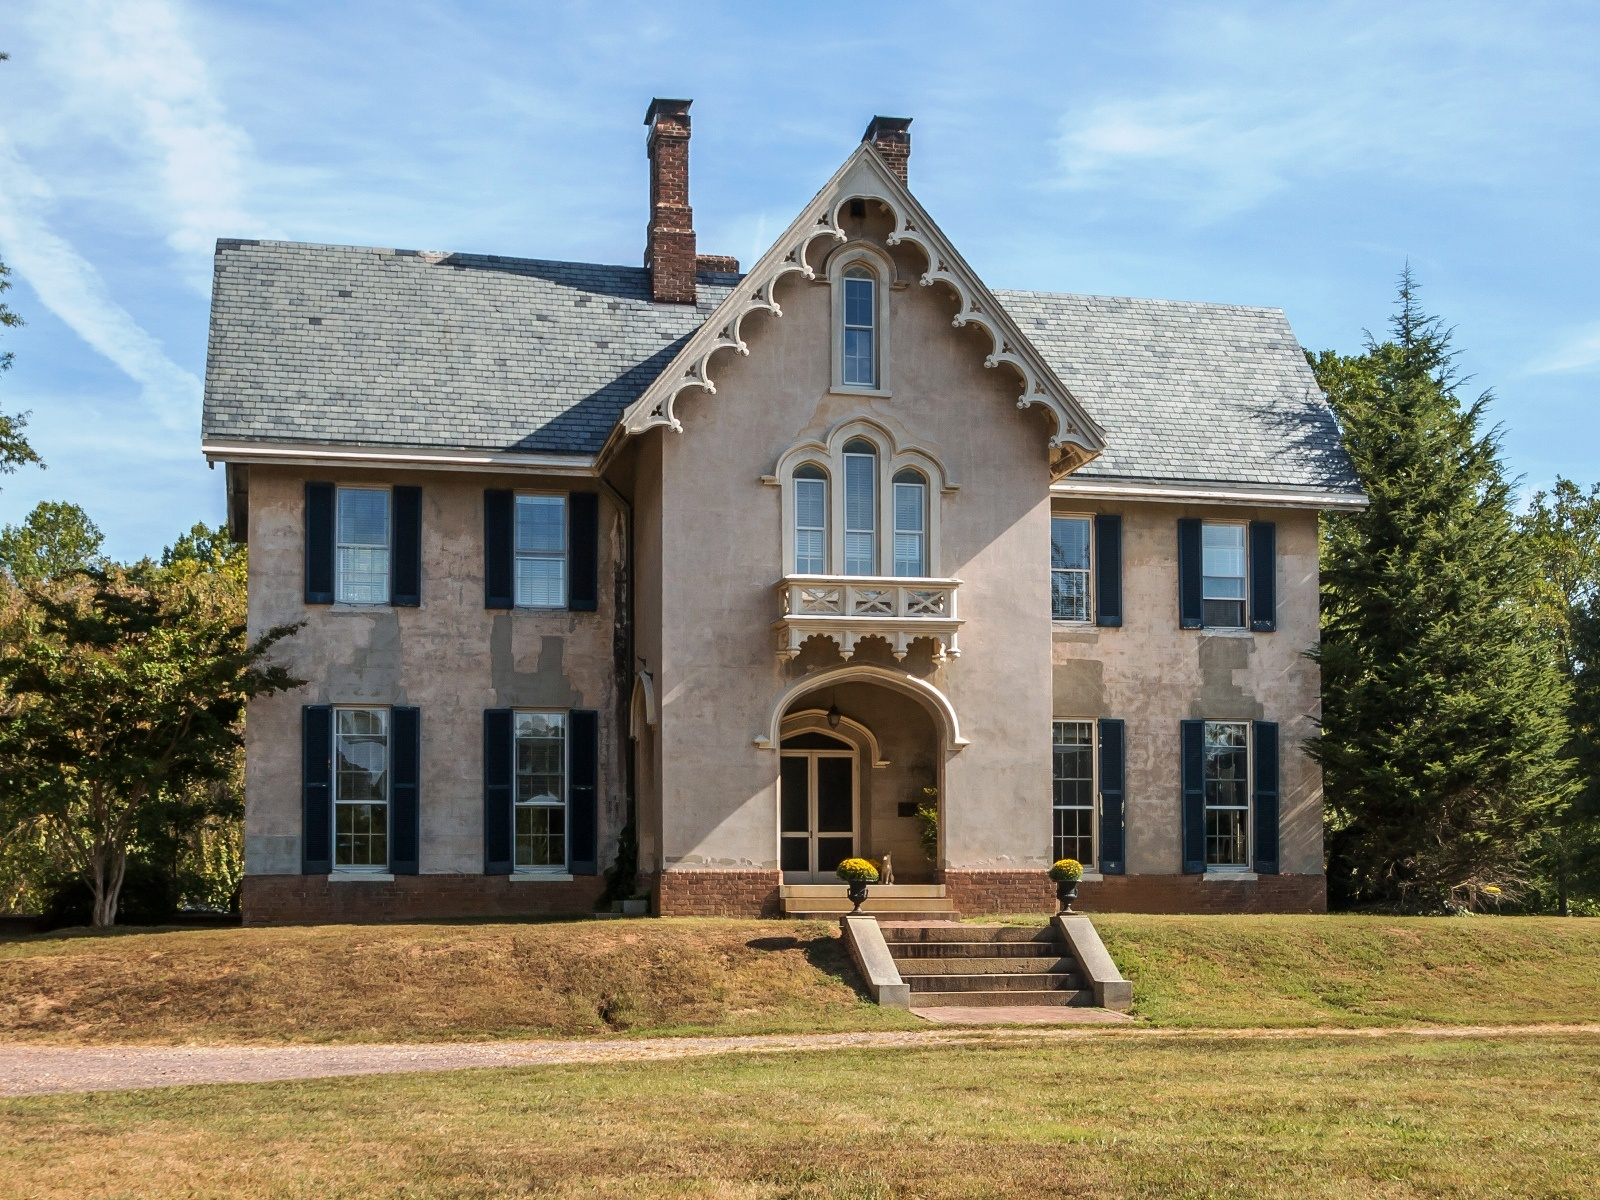 Home architecture 101 gothic revival Home architecture blogs